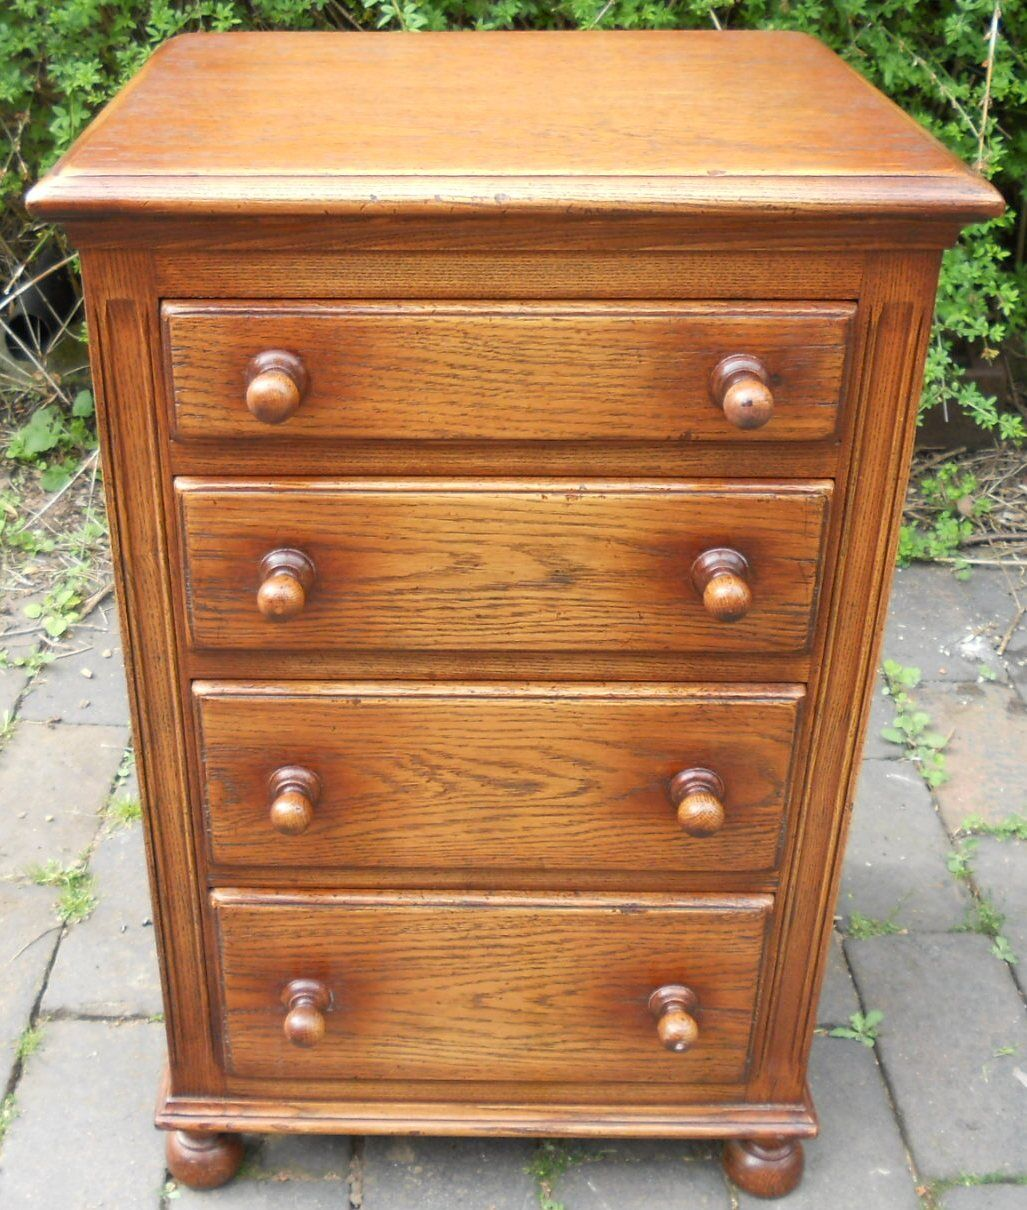 dux sofa uk mini leather sectional small oak chest of drawers by reprodux bevan funnell